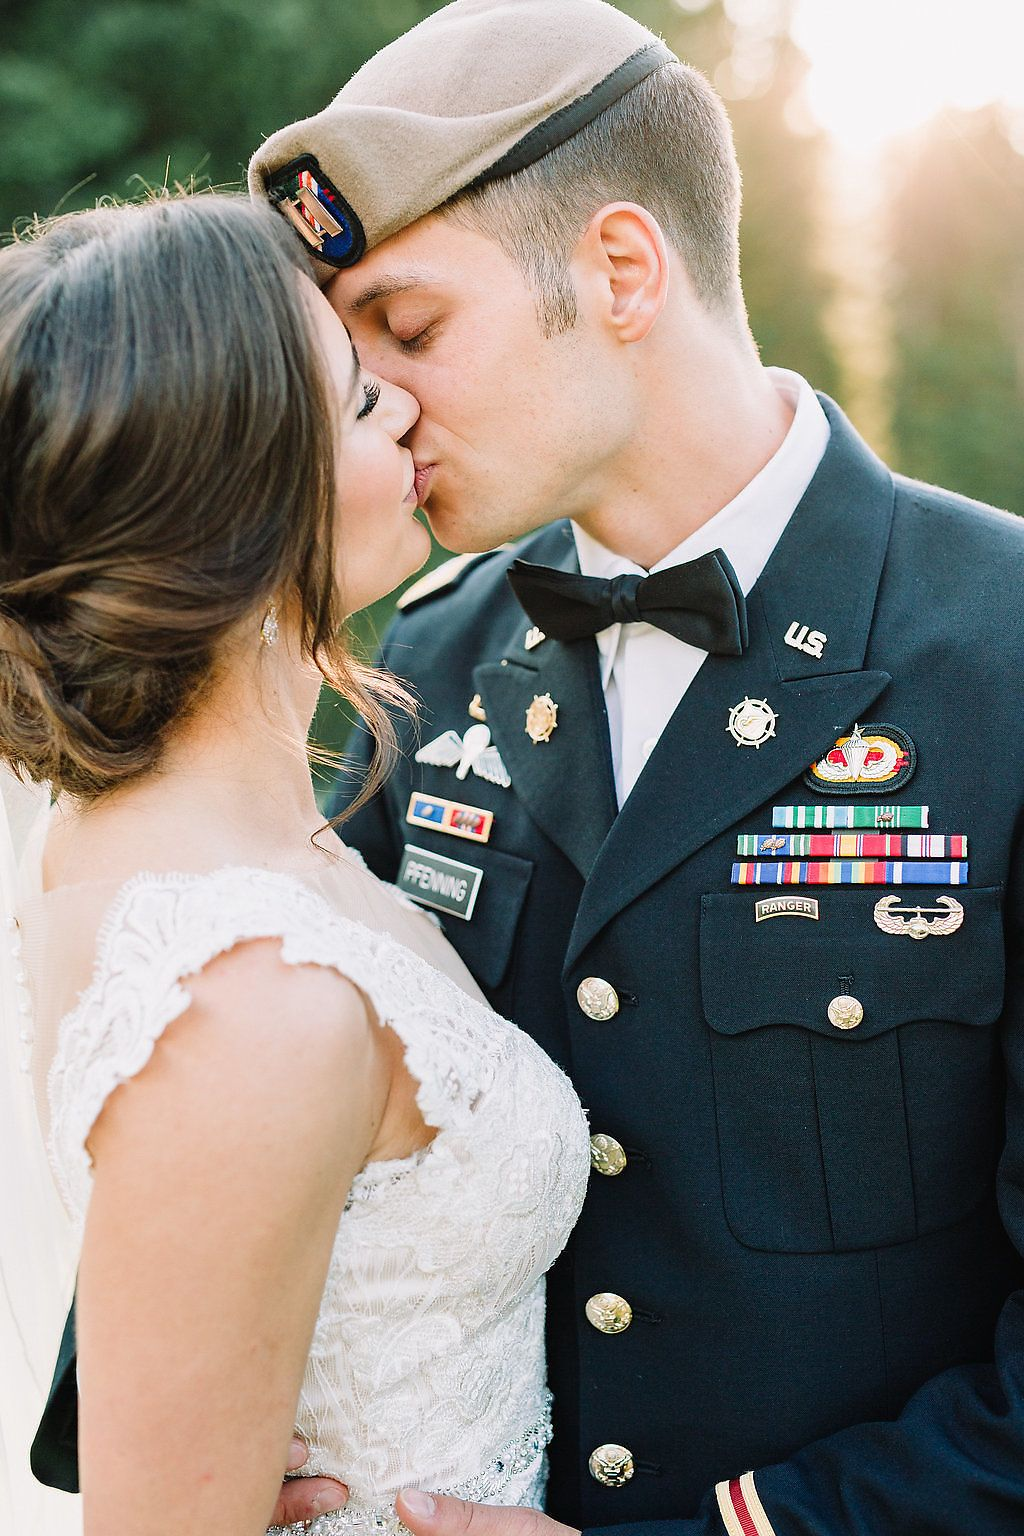 Military Wedding Army Rangers Romantic Bride And Groom Photo By As Ever Photography Military Wedding Army Military Wedding Pictures Military Wedding [ 1536 x 1024 Pixel ]